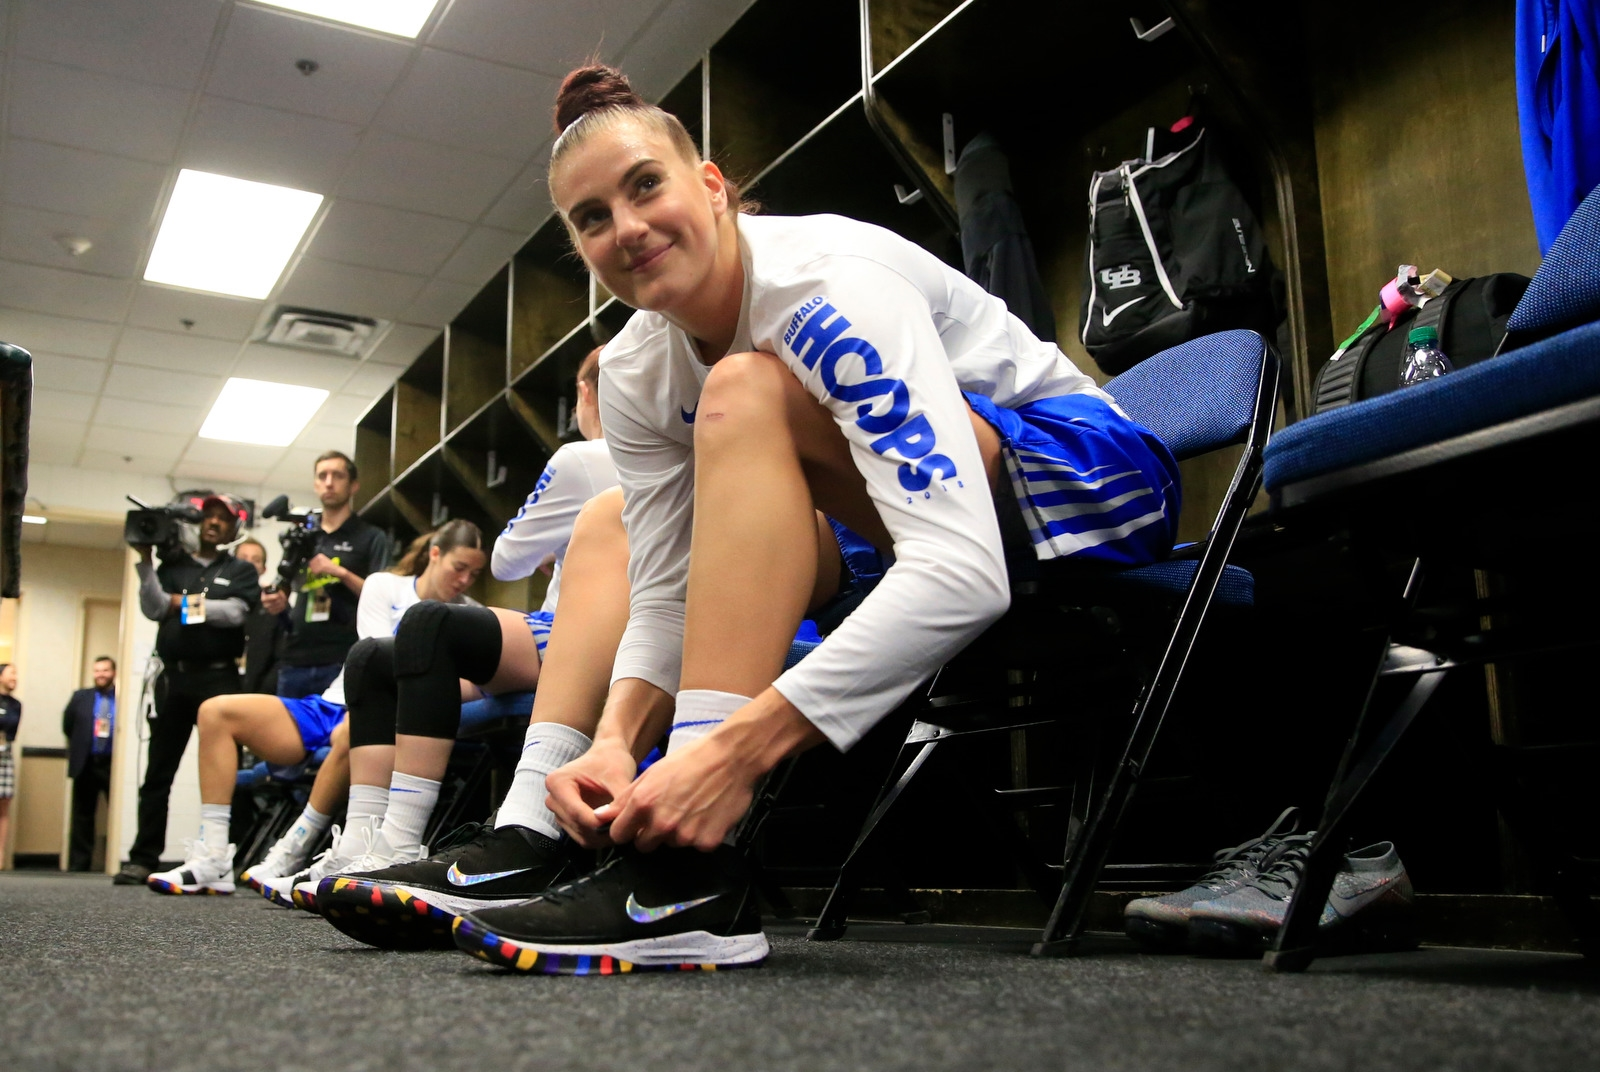 Buffalo center Cassie Oursler ties her shoelaces prior to playing South Carolina in the NCAA women's college basketball tournament regional semifinal at the Times Union Center on Saturday March 24, 2018.